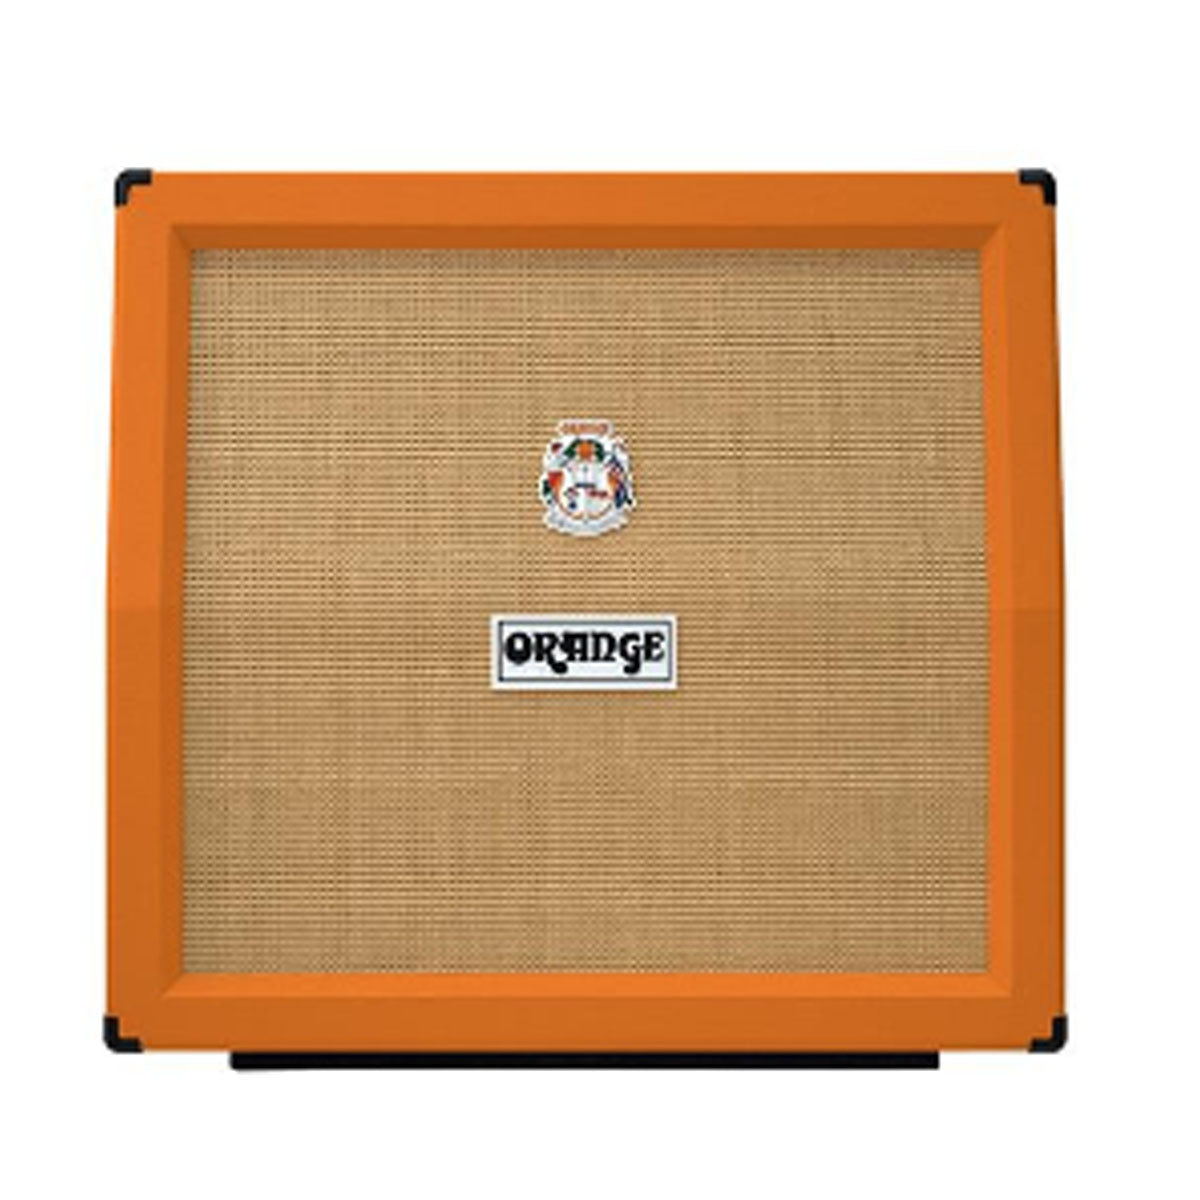 Orange PPC412AD Guitar Cabinet Angled 4x12inch Speaker Cab - Black